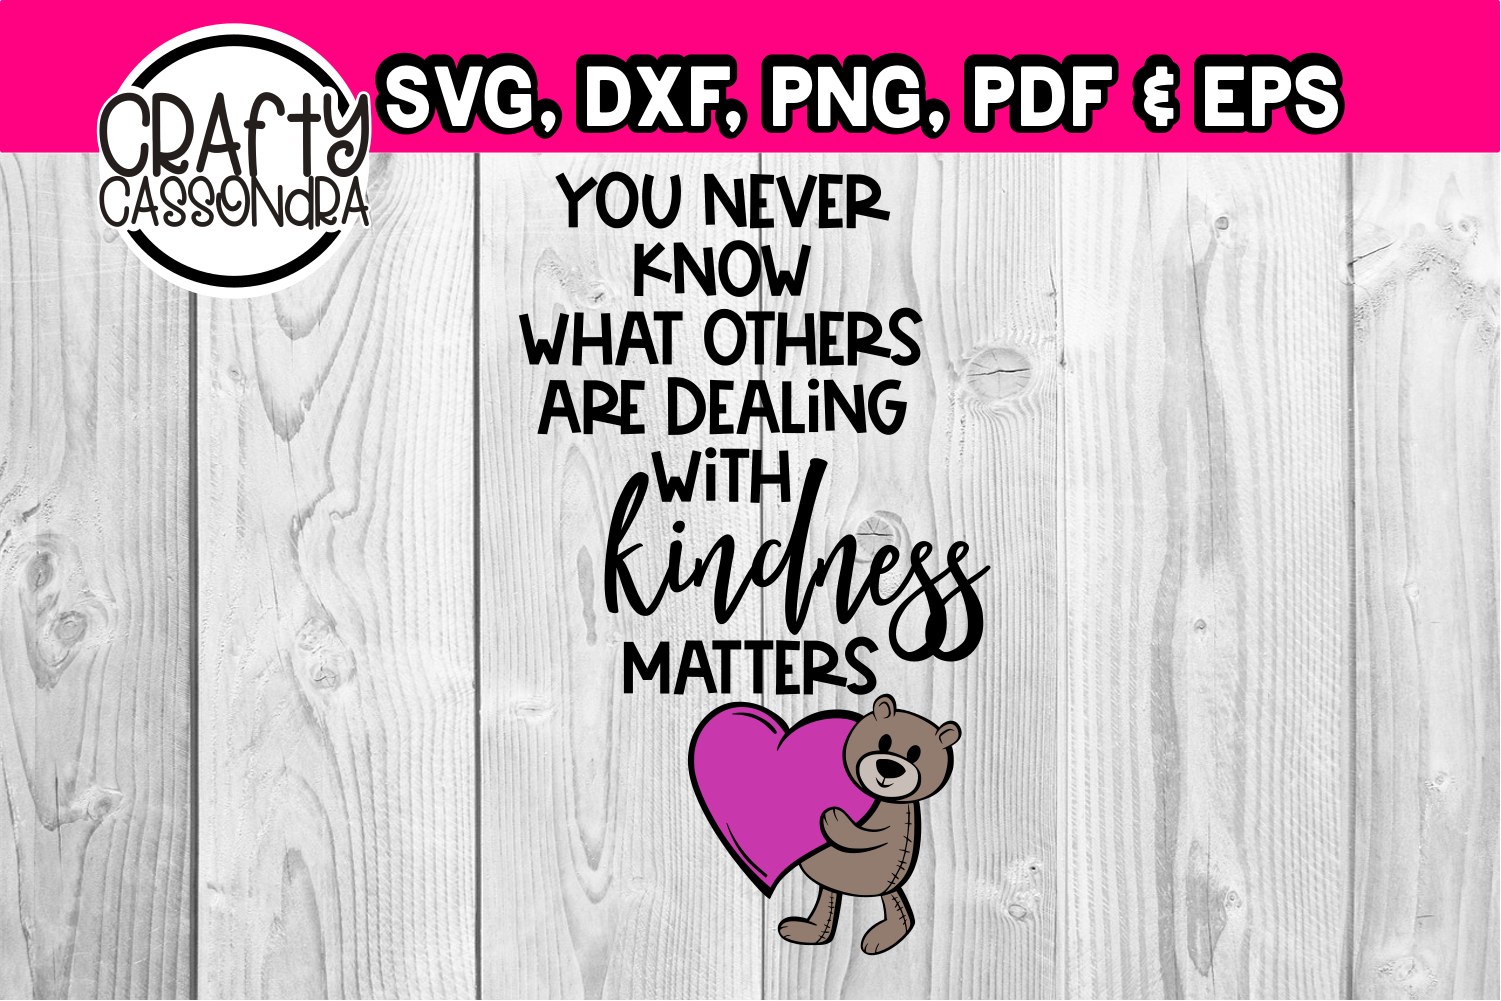 You never know what others are dealing with kindness matters example image 1